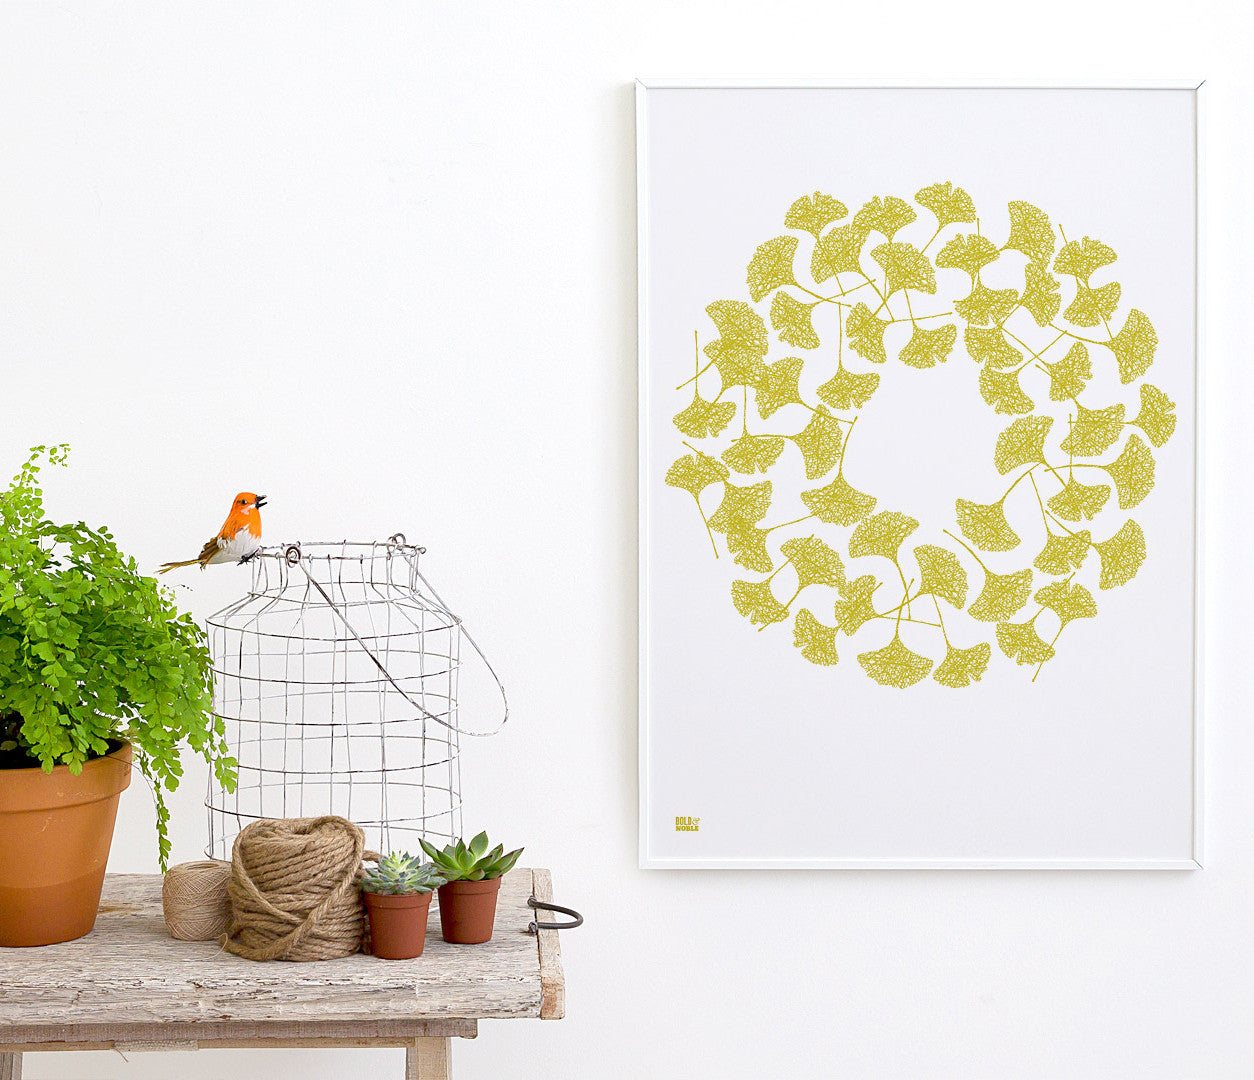 Wall Art ideas: Economical Screen Prints, Ginkgo Leaves in Yellow Moss